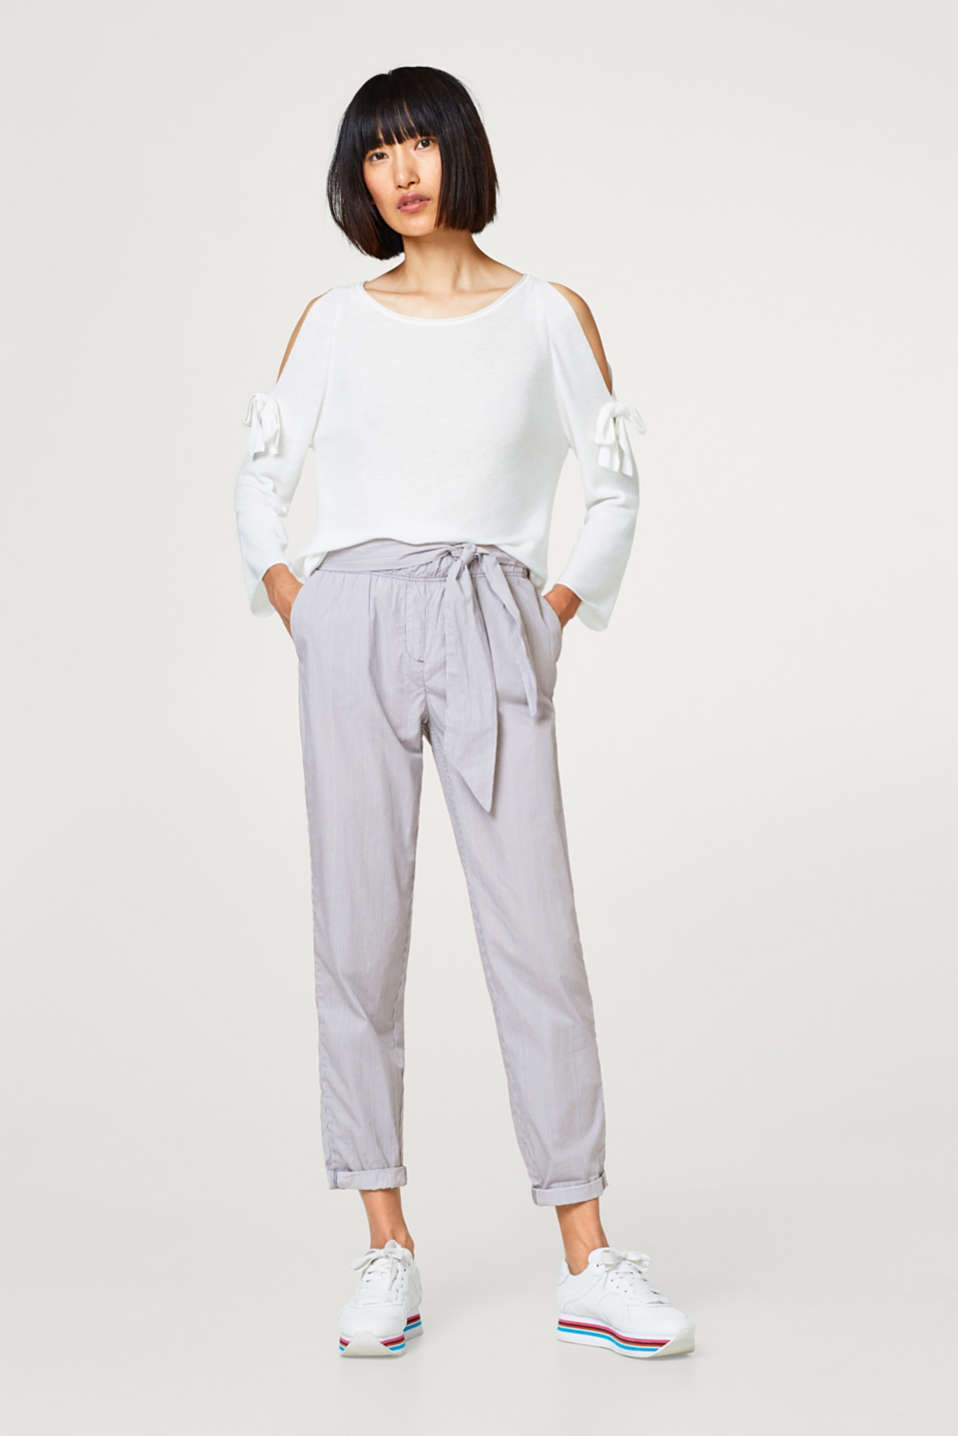 Esprit - Tracksuit bottoms with a bow detail, 100% cotton